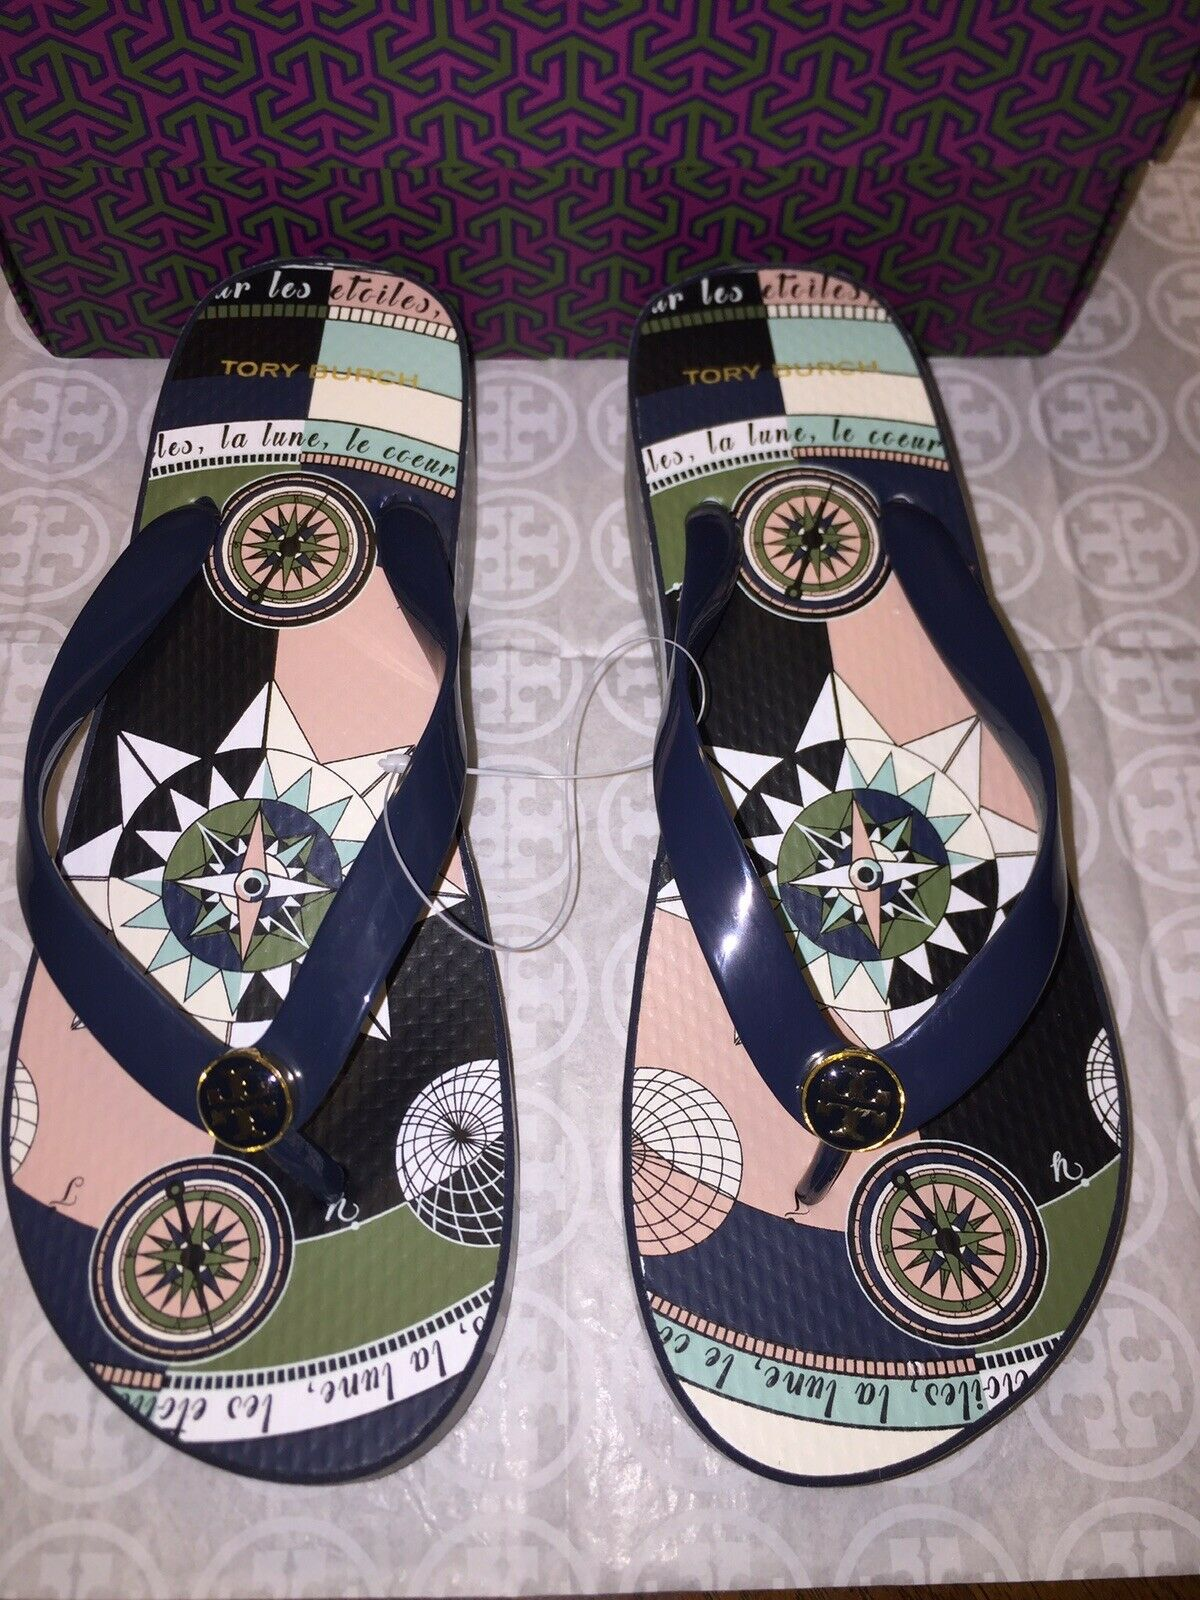 NIB Tory Burch PRINTED CARVED WEDGE FLIP-FLOP in Tory Navy Constellation Size 8